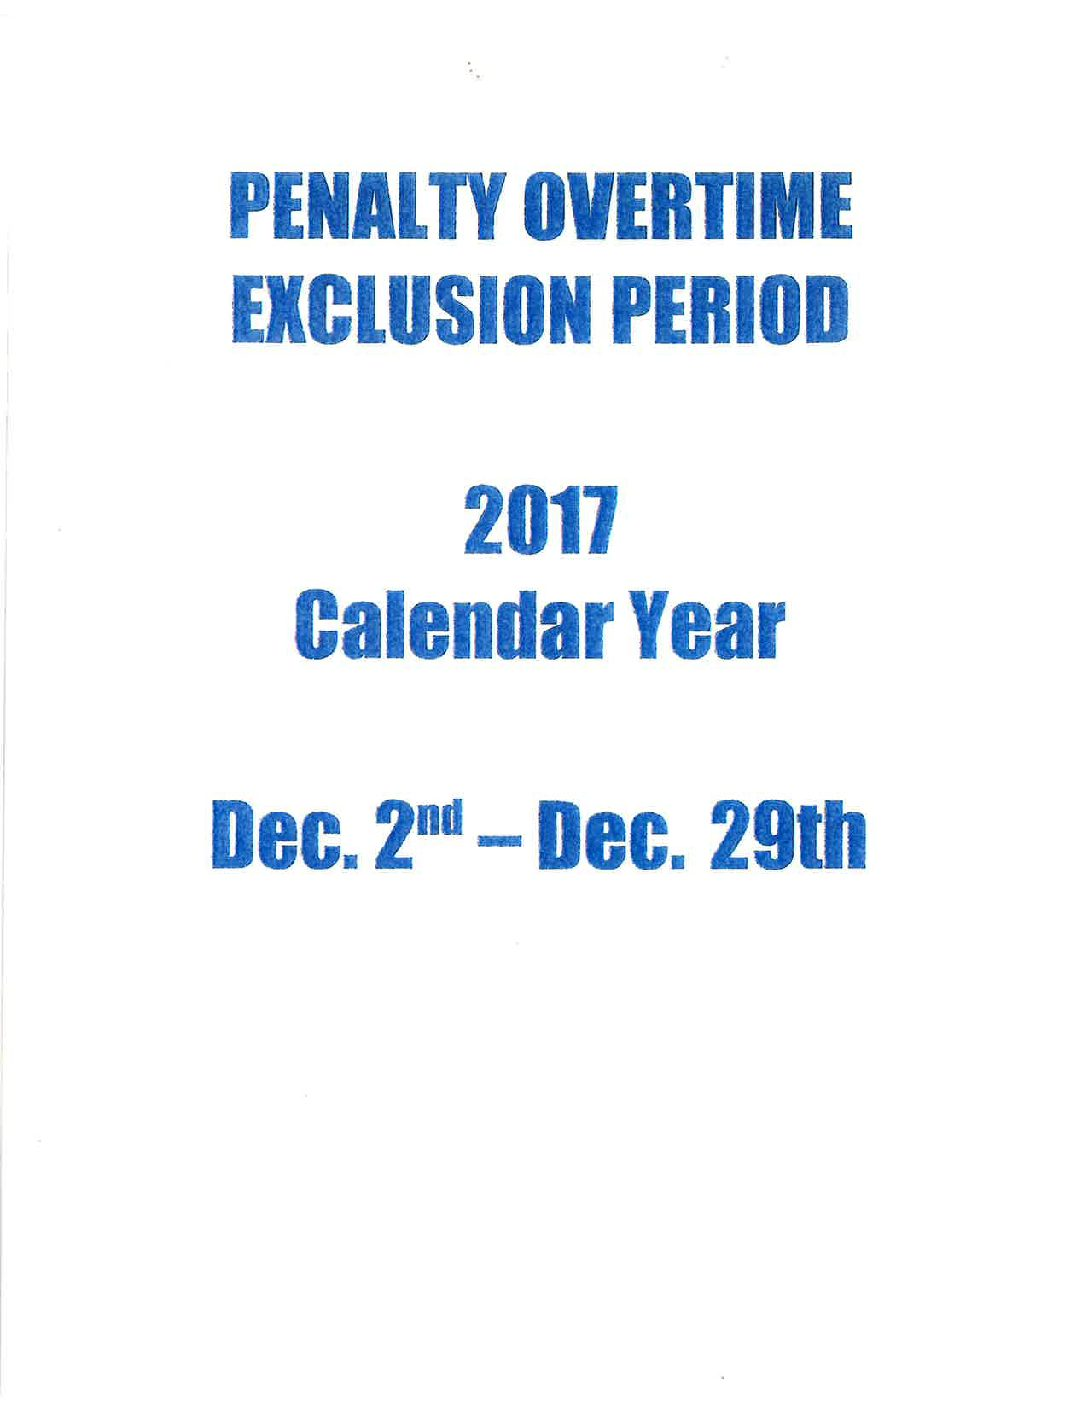 2017 Penalty OT Exclusion Period